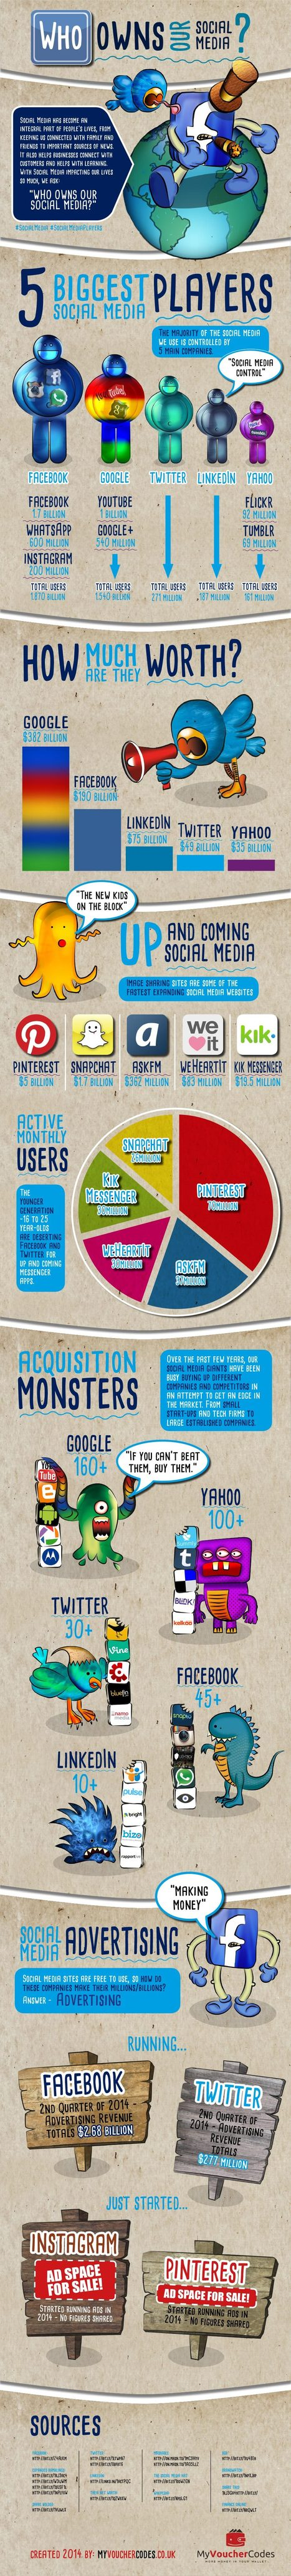 Who Owns Social Media? [INFOGRAPHIC] | brave new world | Scoop.it